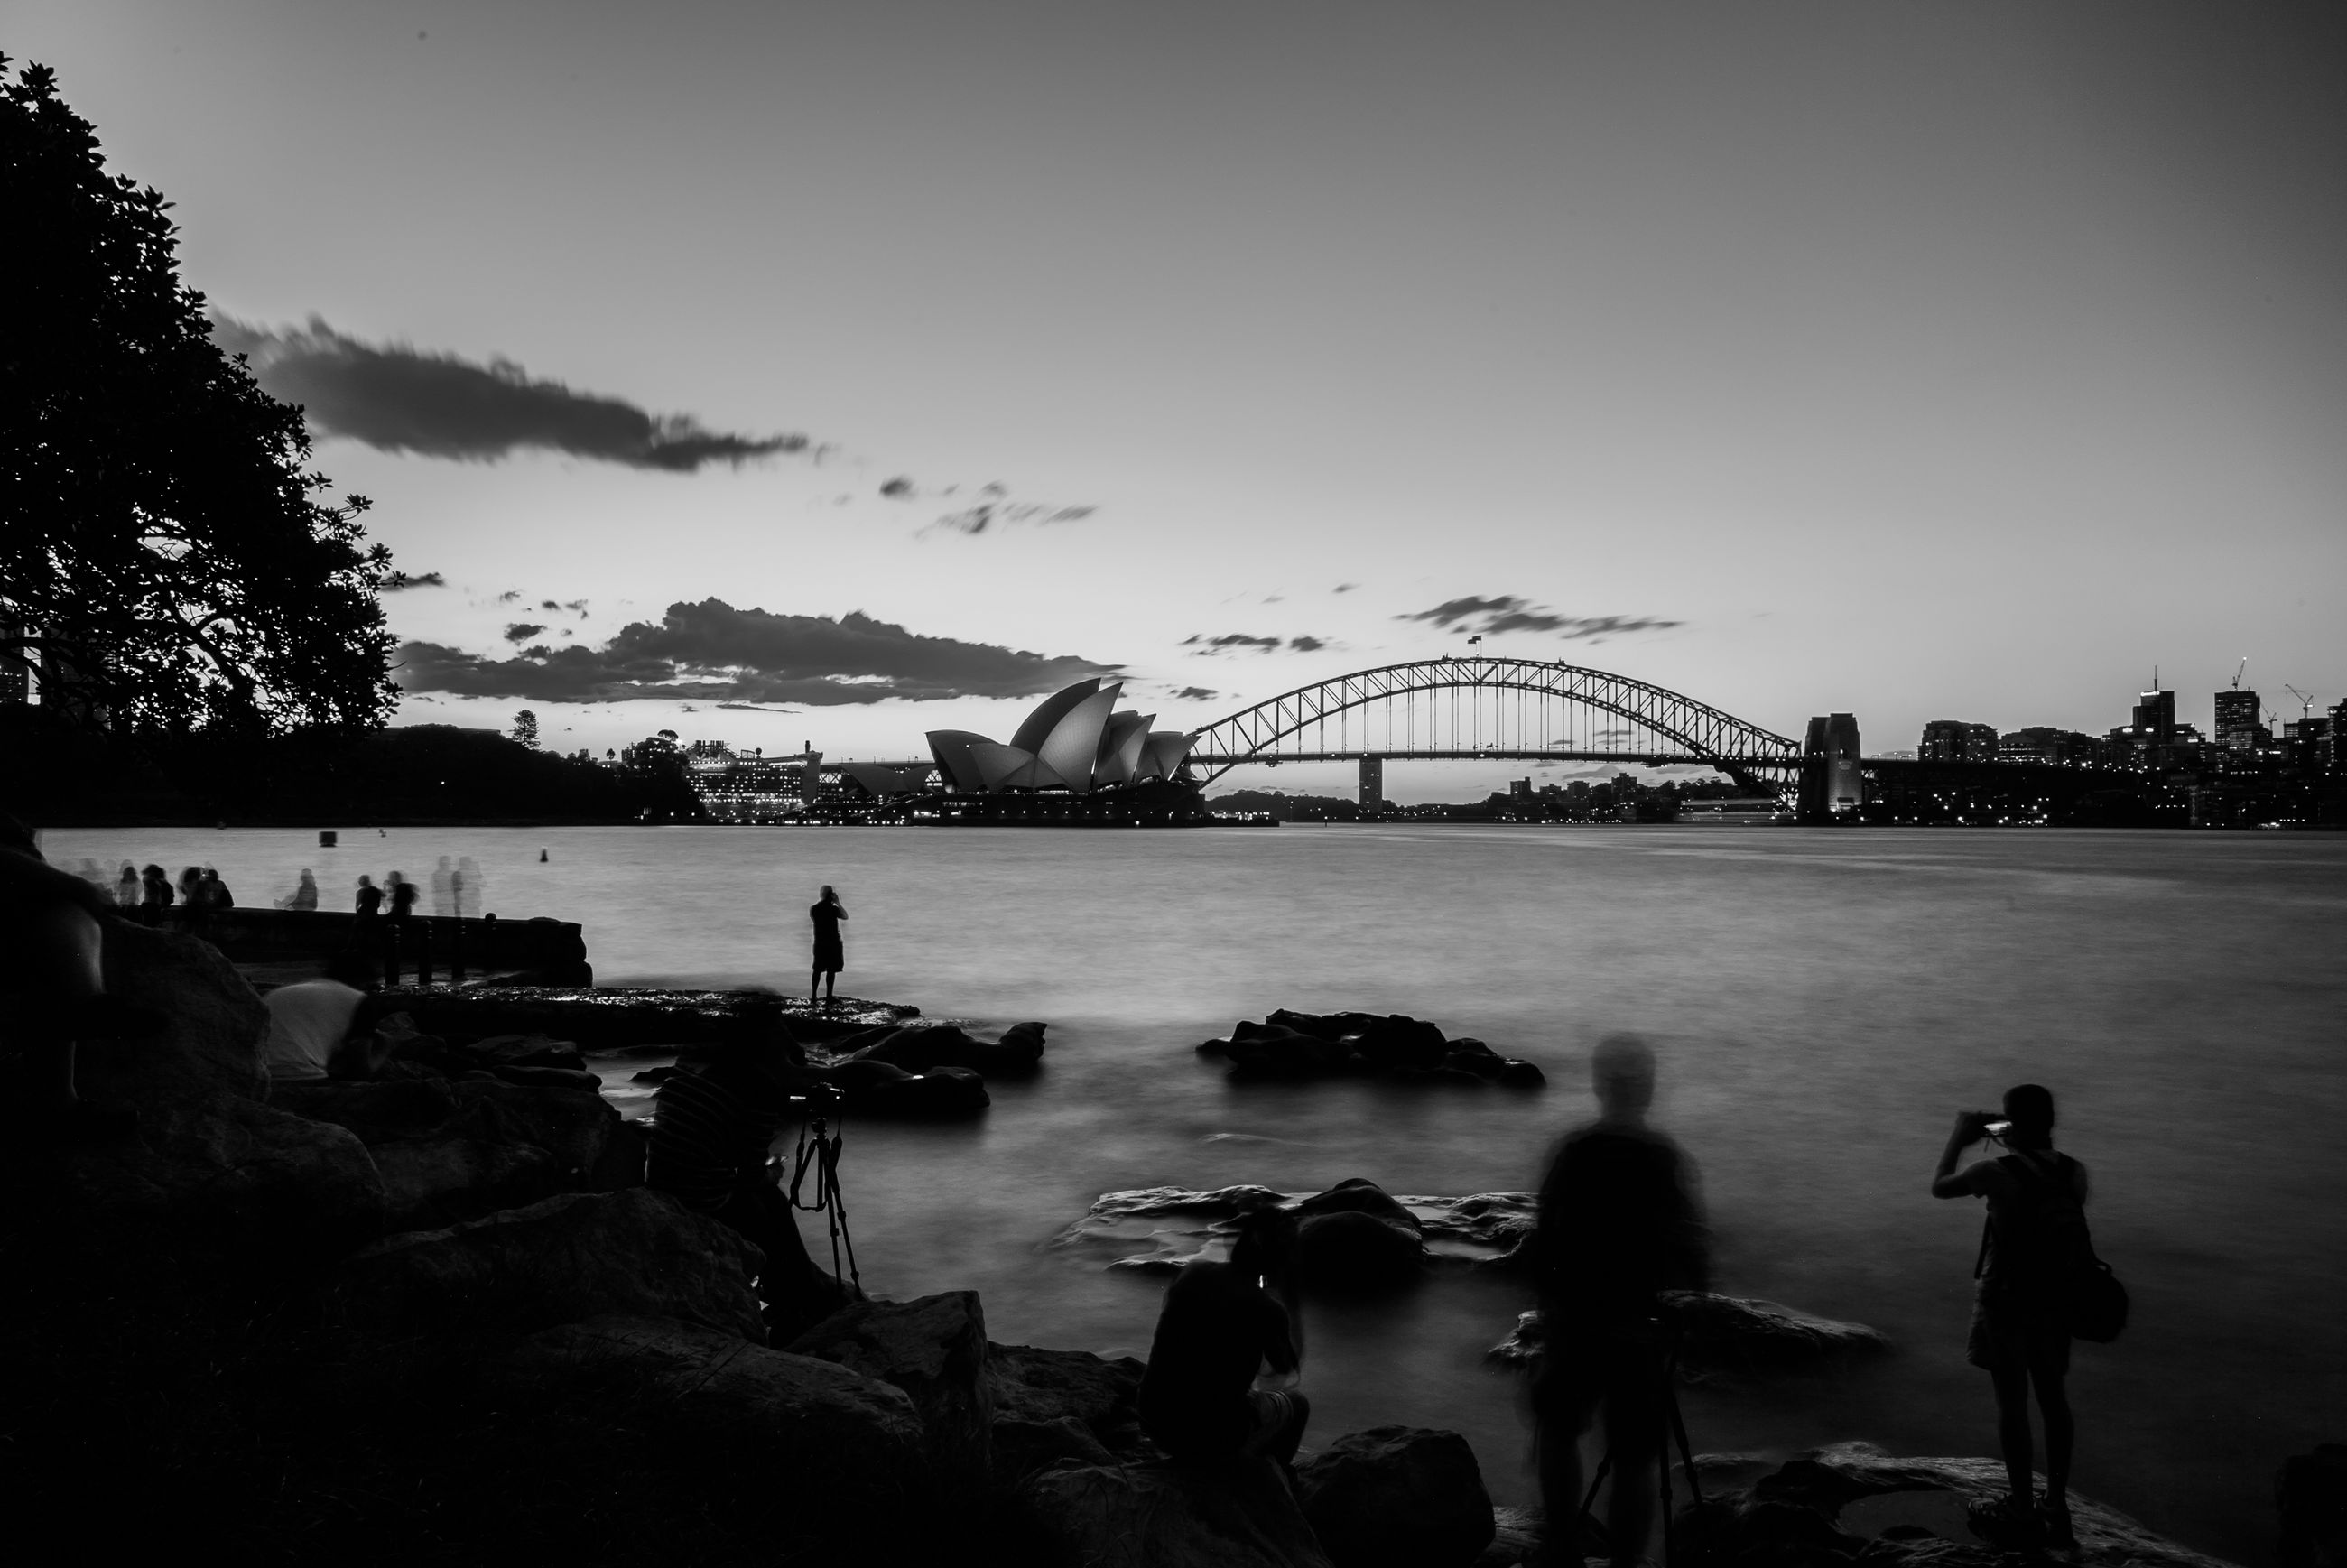 Sydney opera house by bridge in front of river against sky at dusk